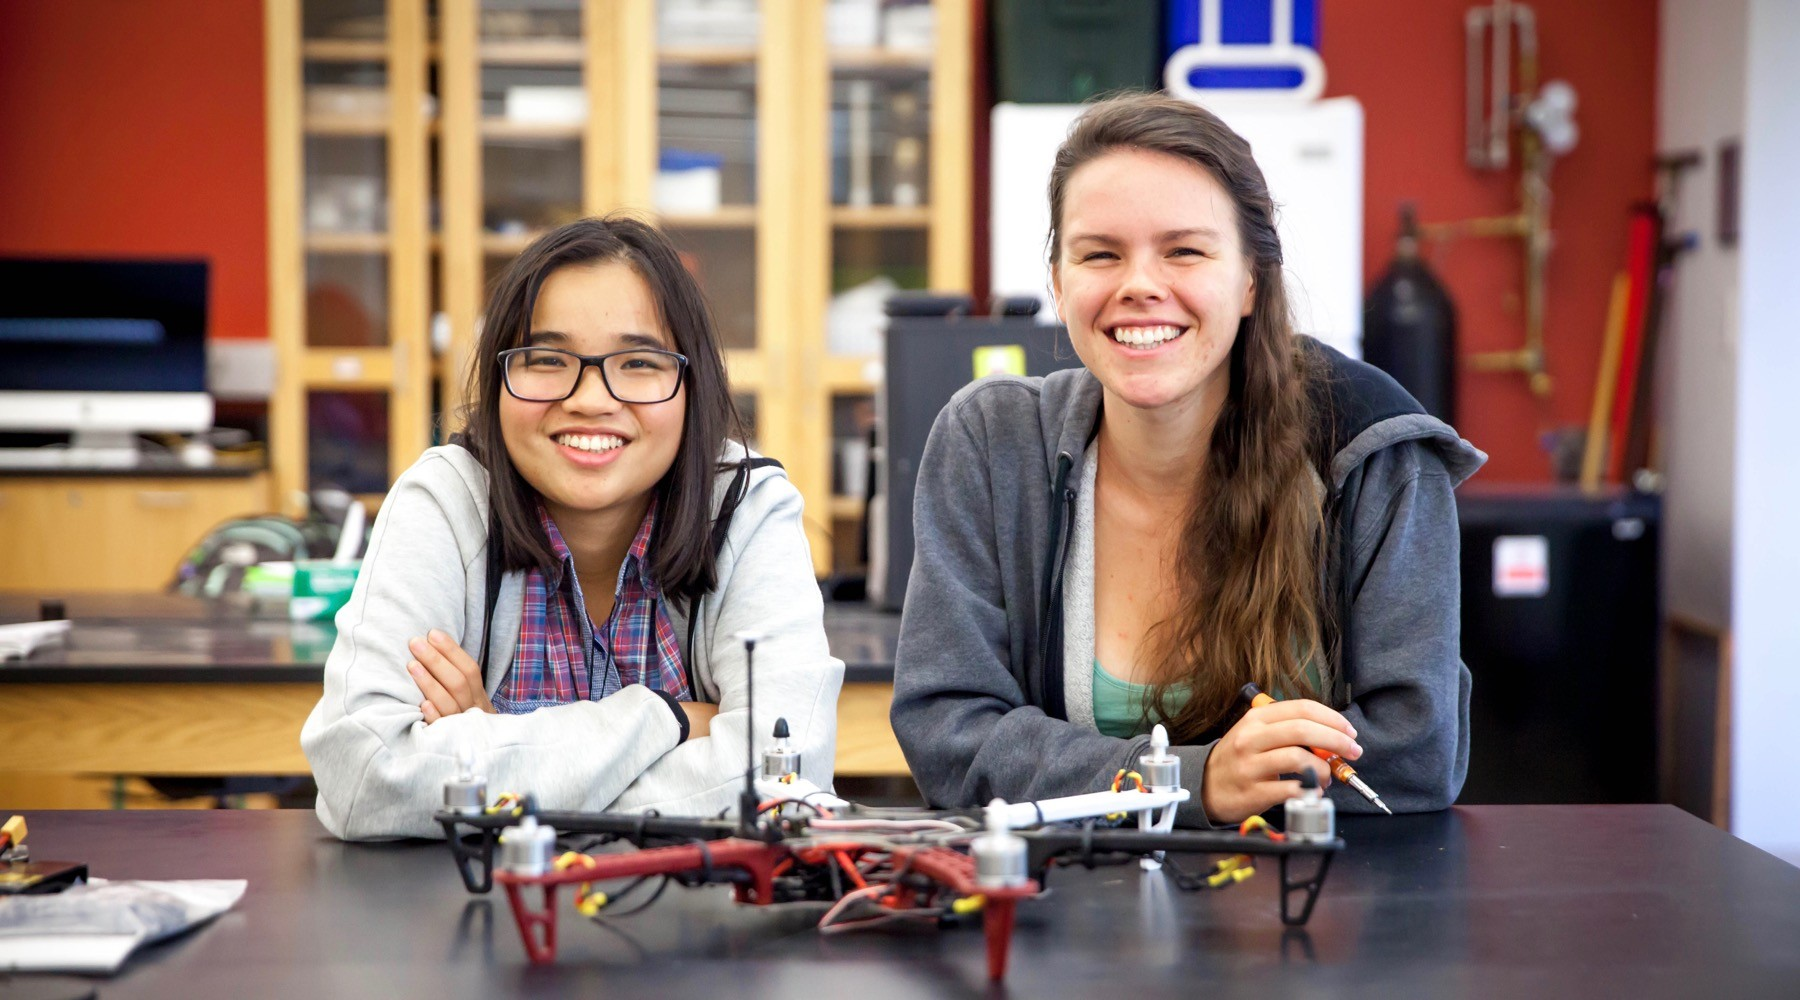 Lam Ngo, left, and Tieta Keetle with the Kashmir World Foundation drone they are building with the help of Aliyah Pandolfi. Photo by Buck Butler